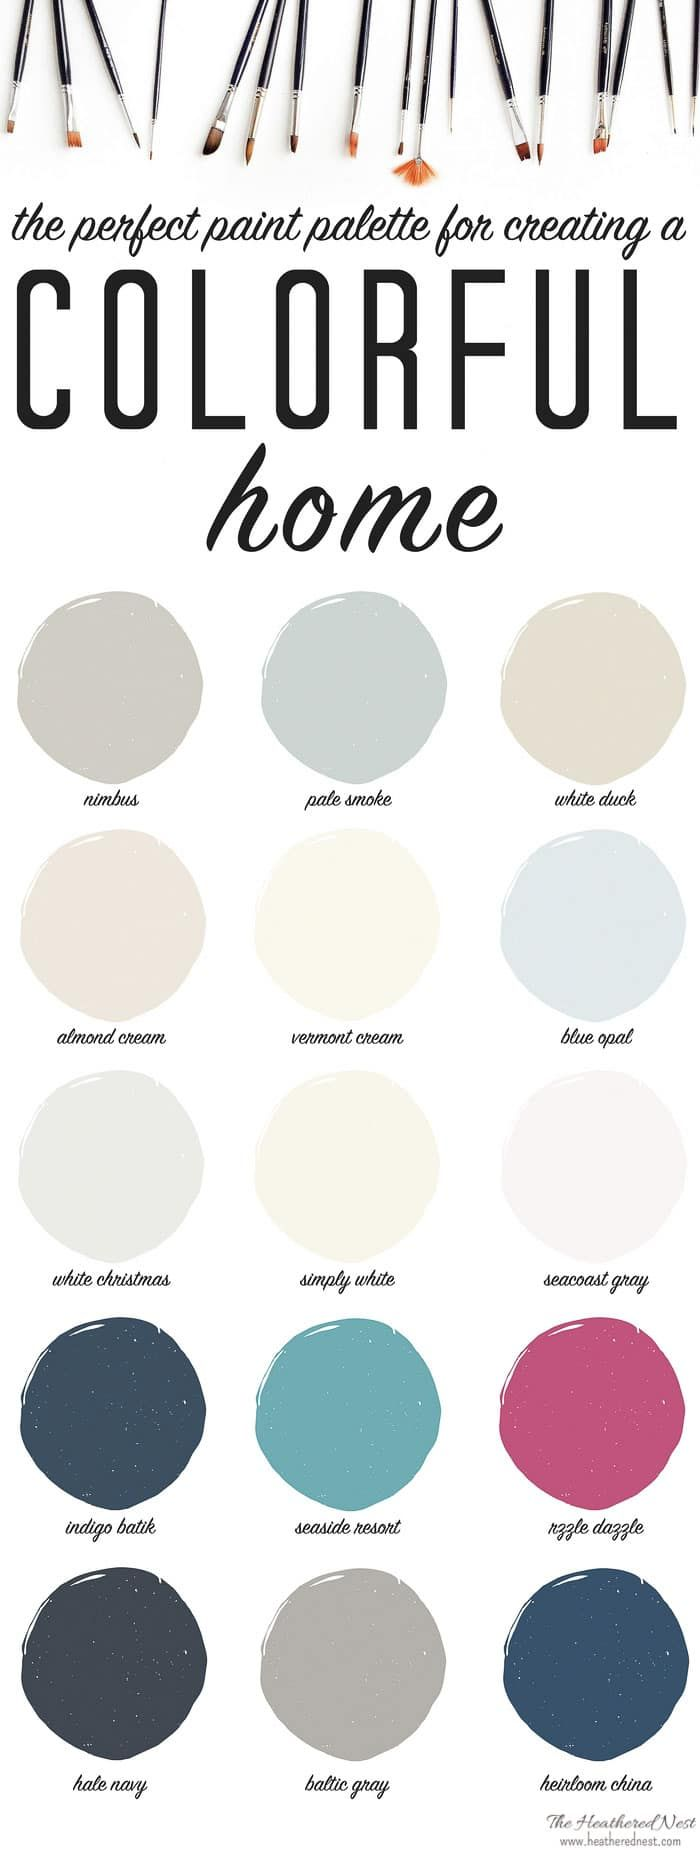 Color crimson on pinterest style guides painted - Our In Living Color Paint Palette